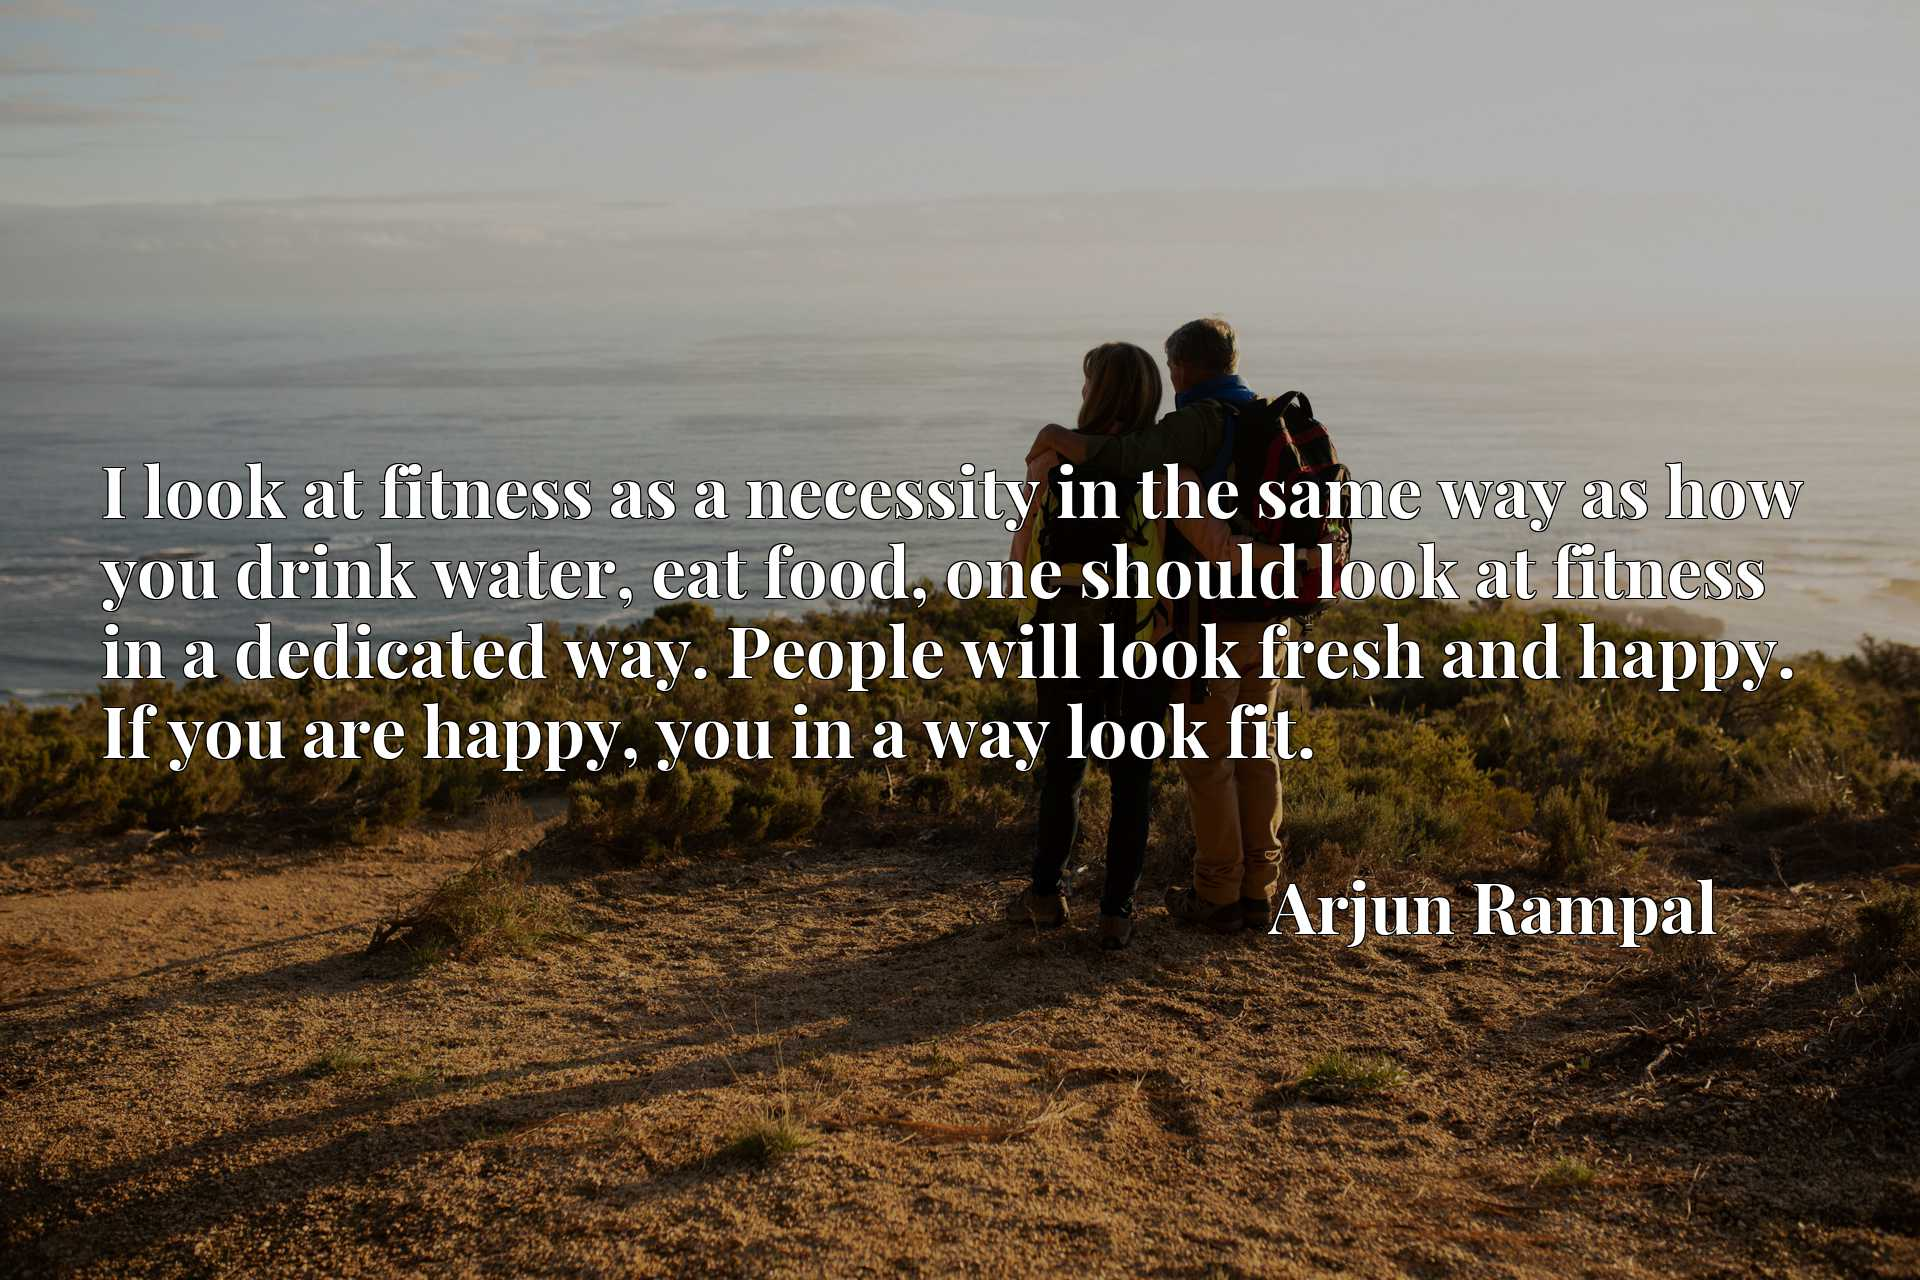 I look at fitness as a necessity in the same way as how you drink water, eat food, one should look at fitness in a dedicated way. People will look fresh and happy. If you are happy, you in a way look fit.